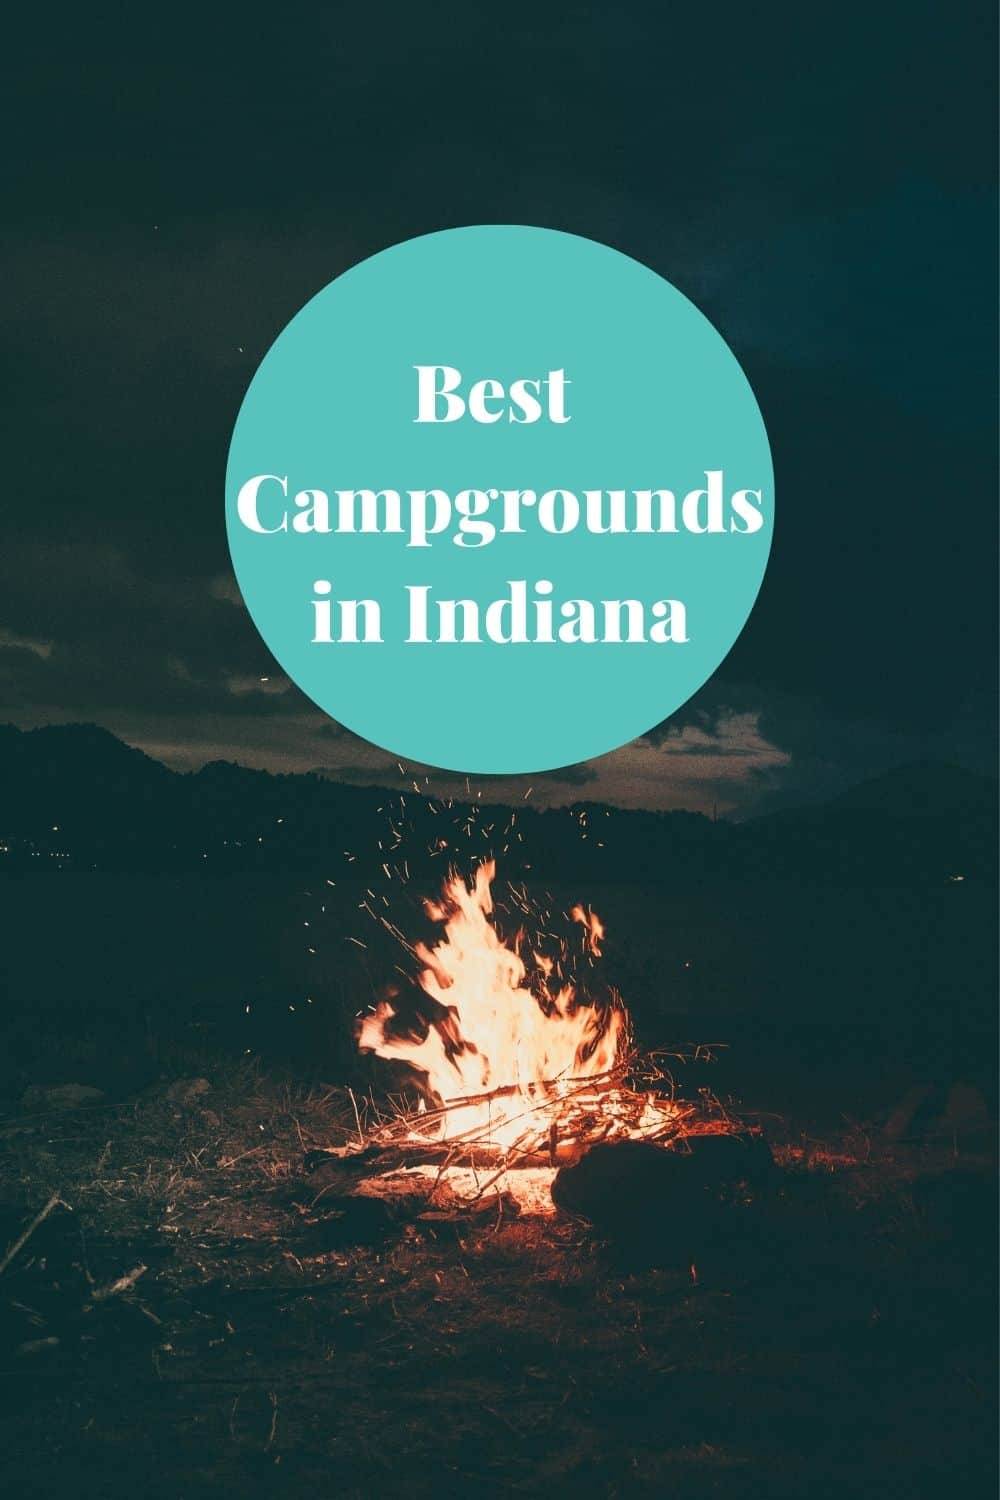 Best Campgrounds in Indiana